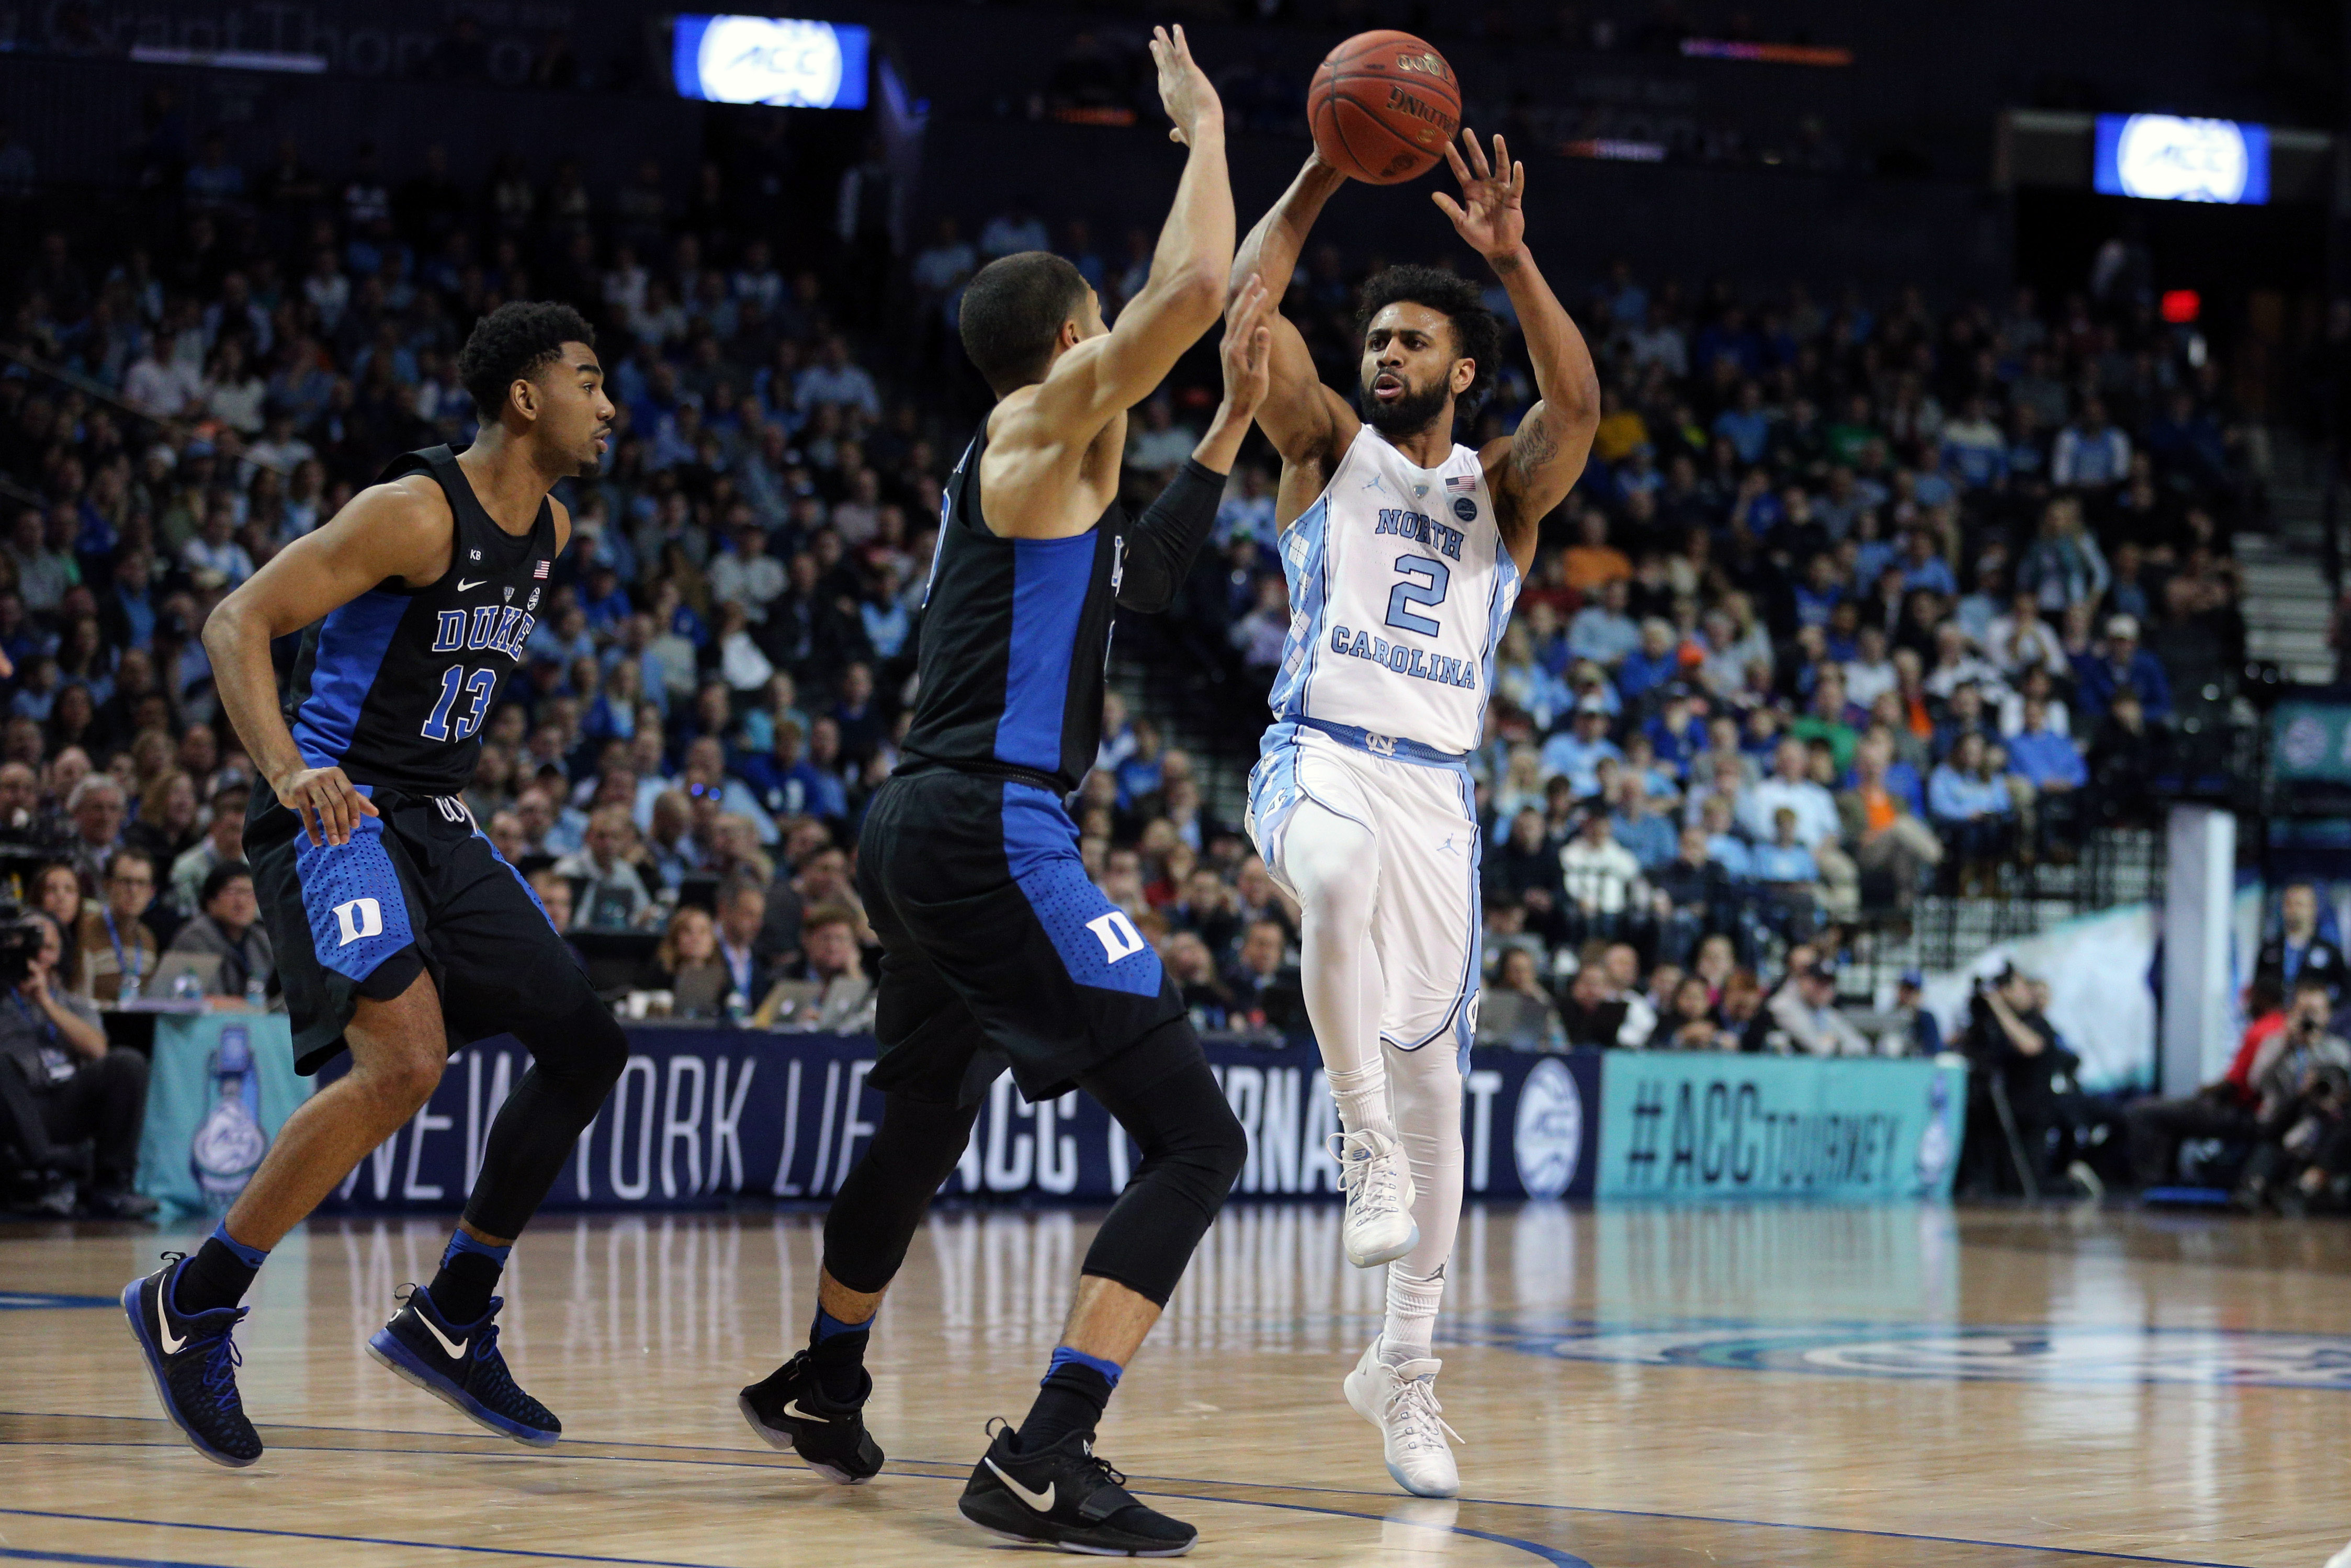 UNC Basketball: Tar Heels stay put in latest AP Top 25 poll